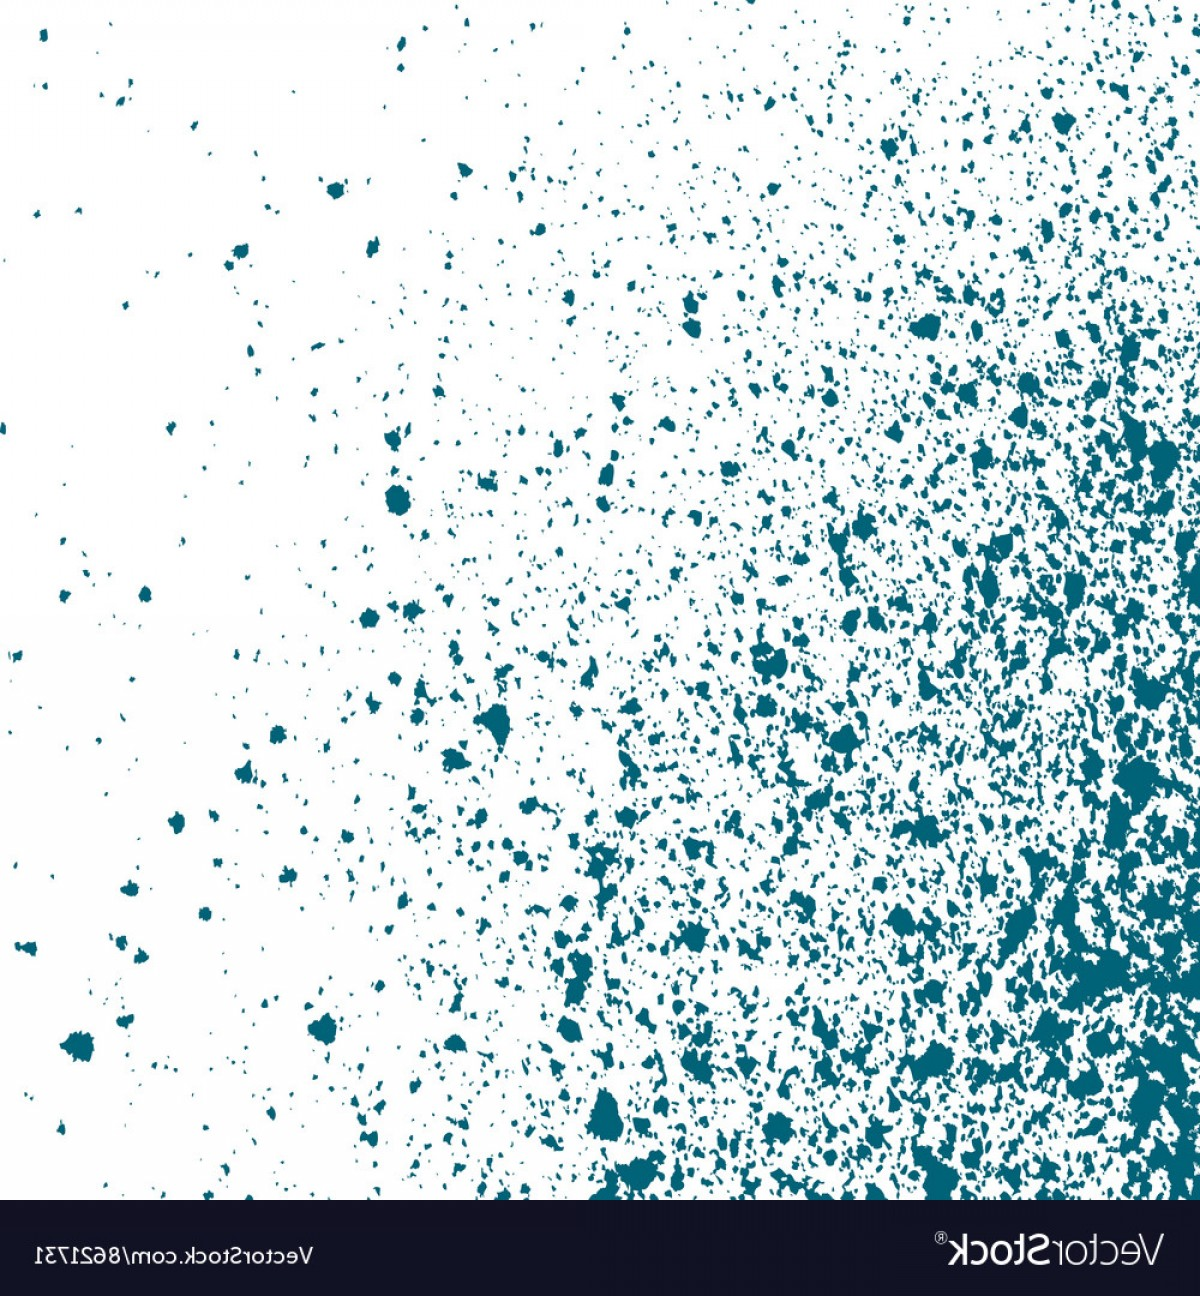 Blue With White Background Vector: Blue Light Ink Paint Splatter On White Background Vector